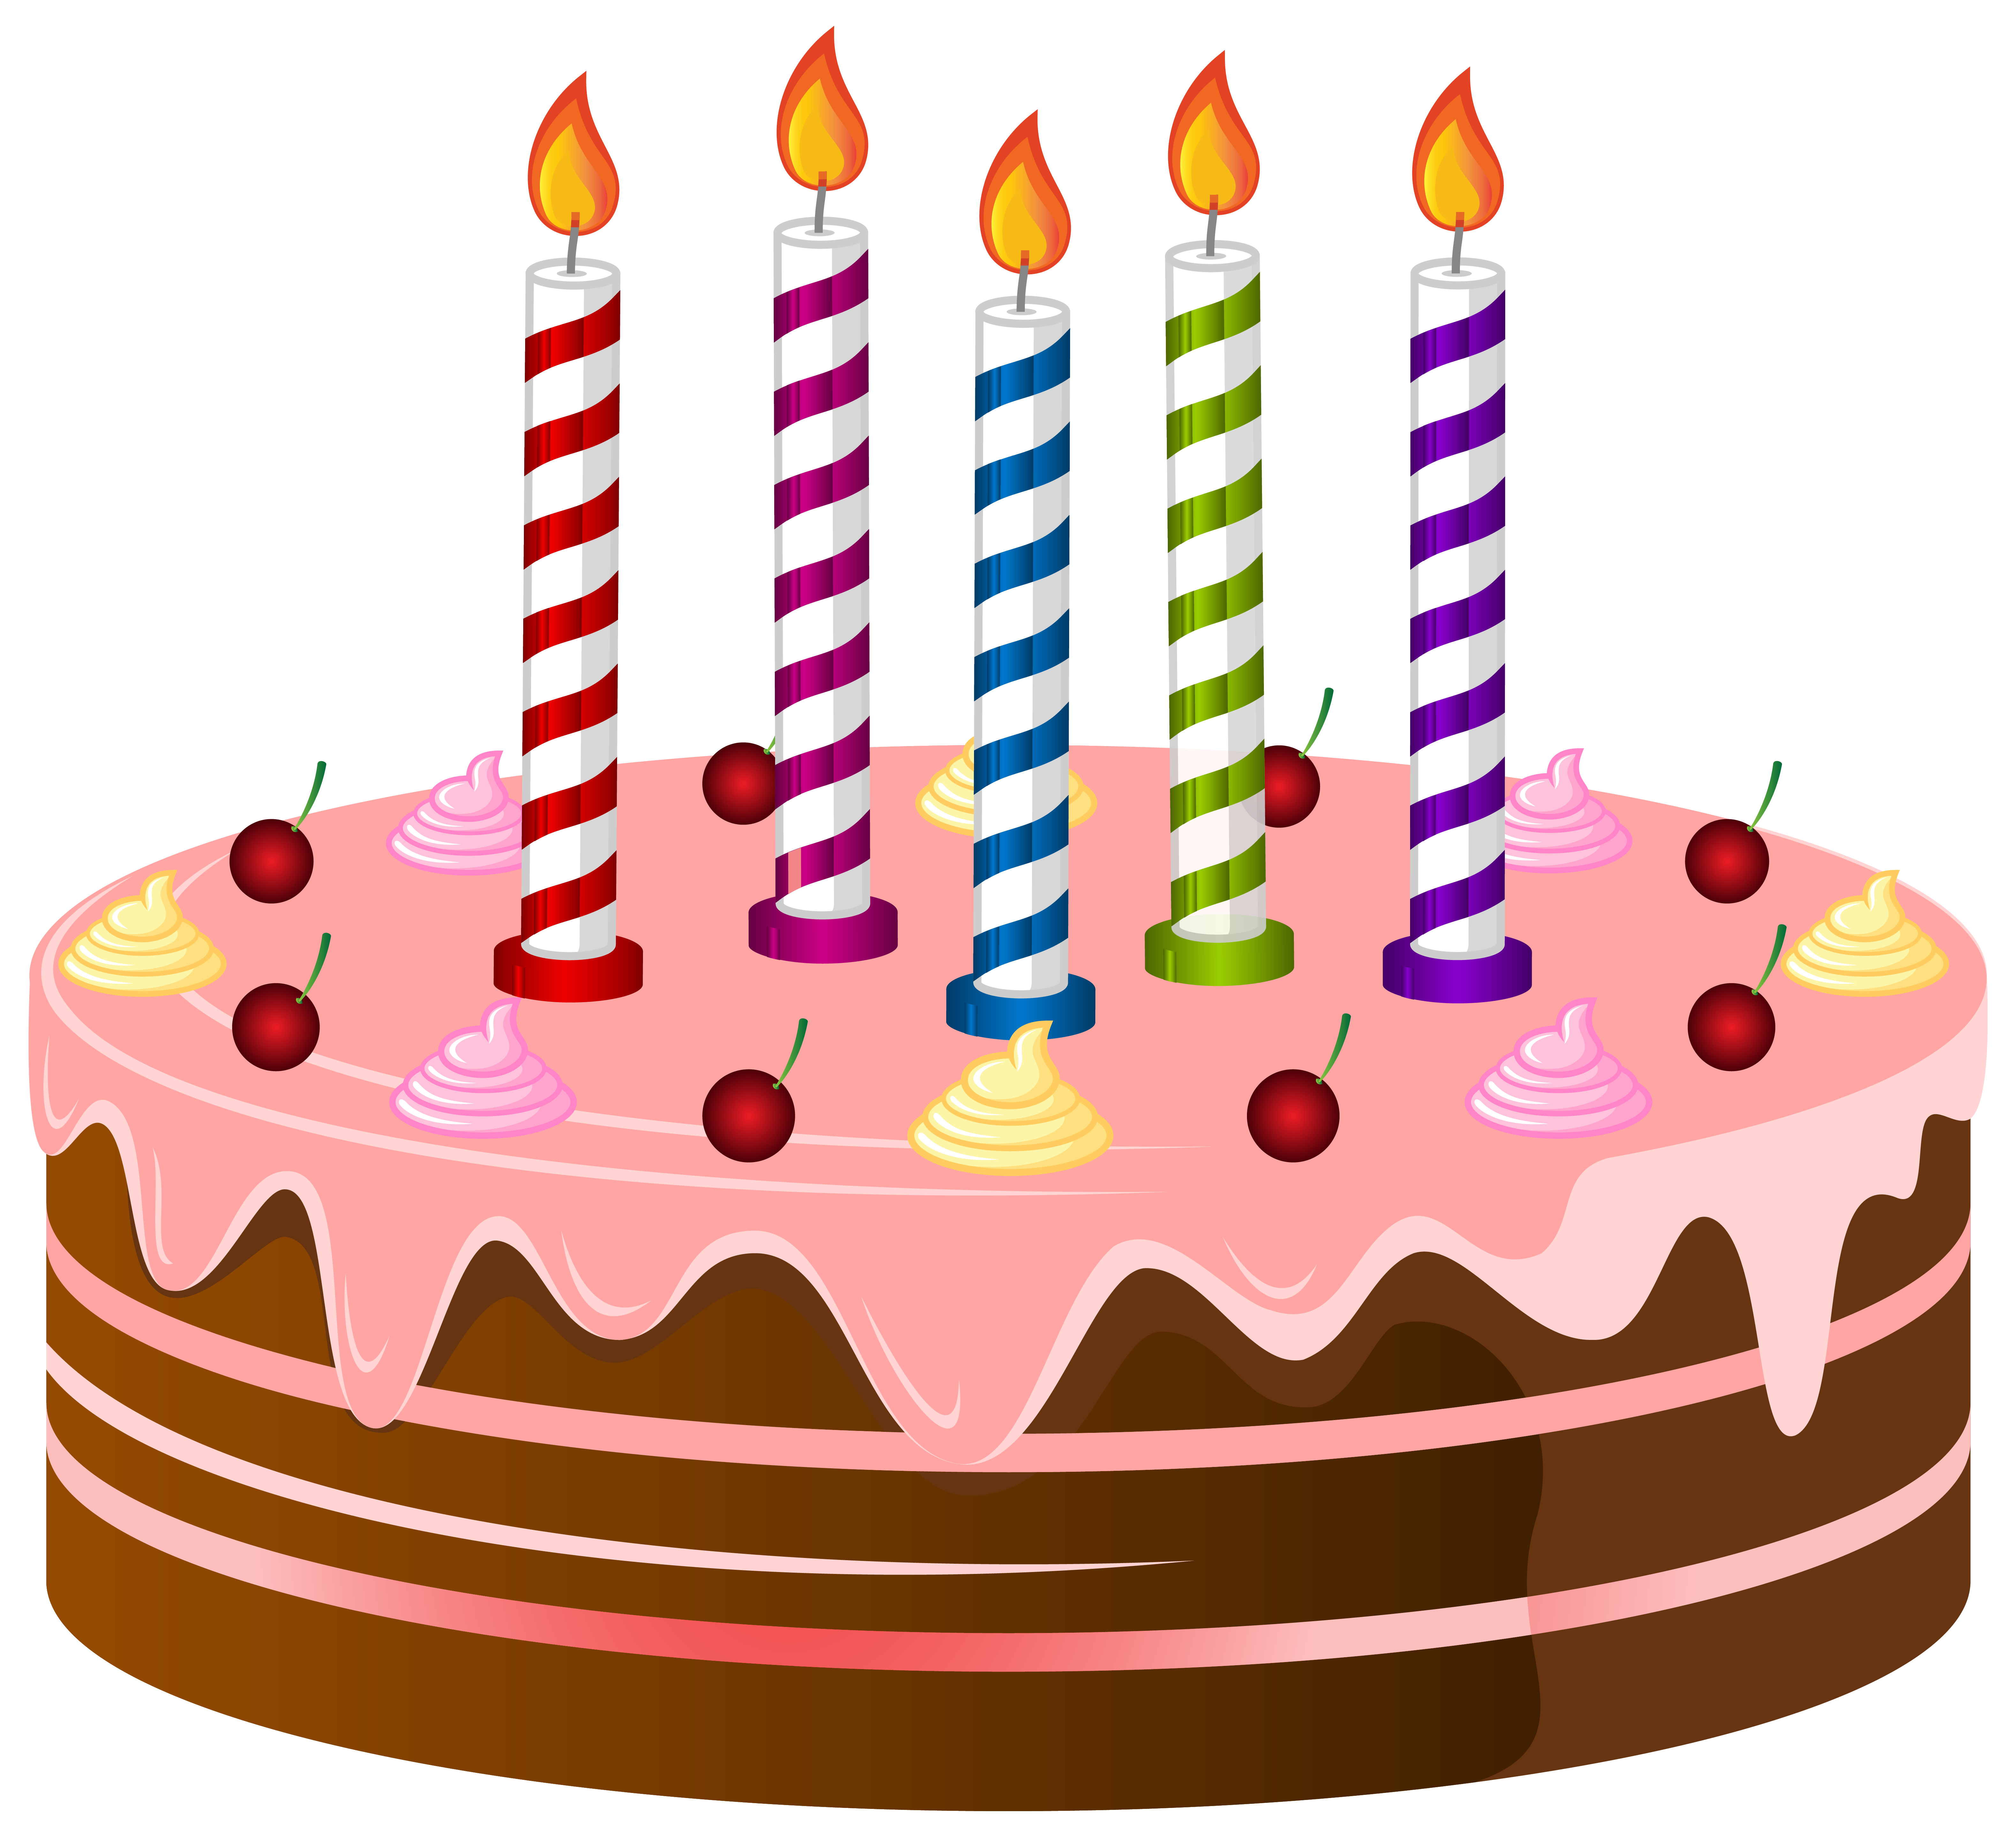 Cocao, Birthday Cake Png Clipart